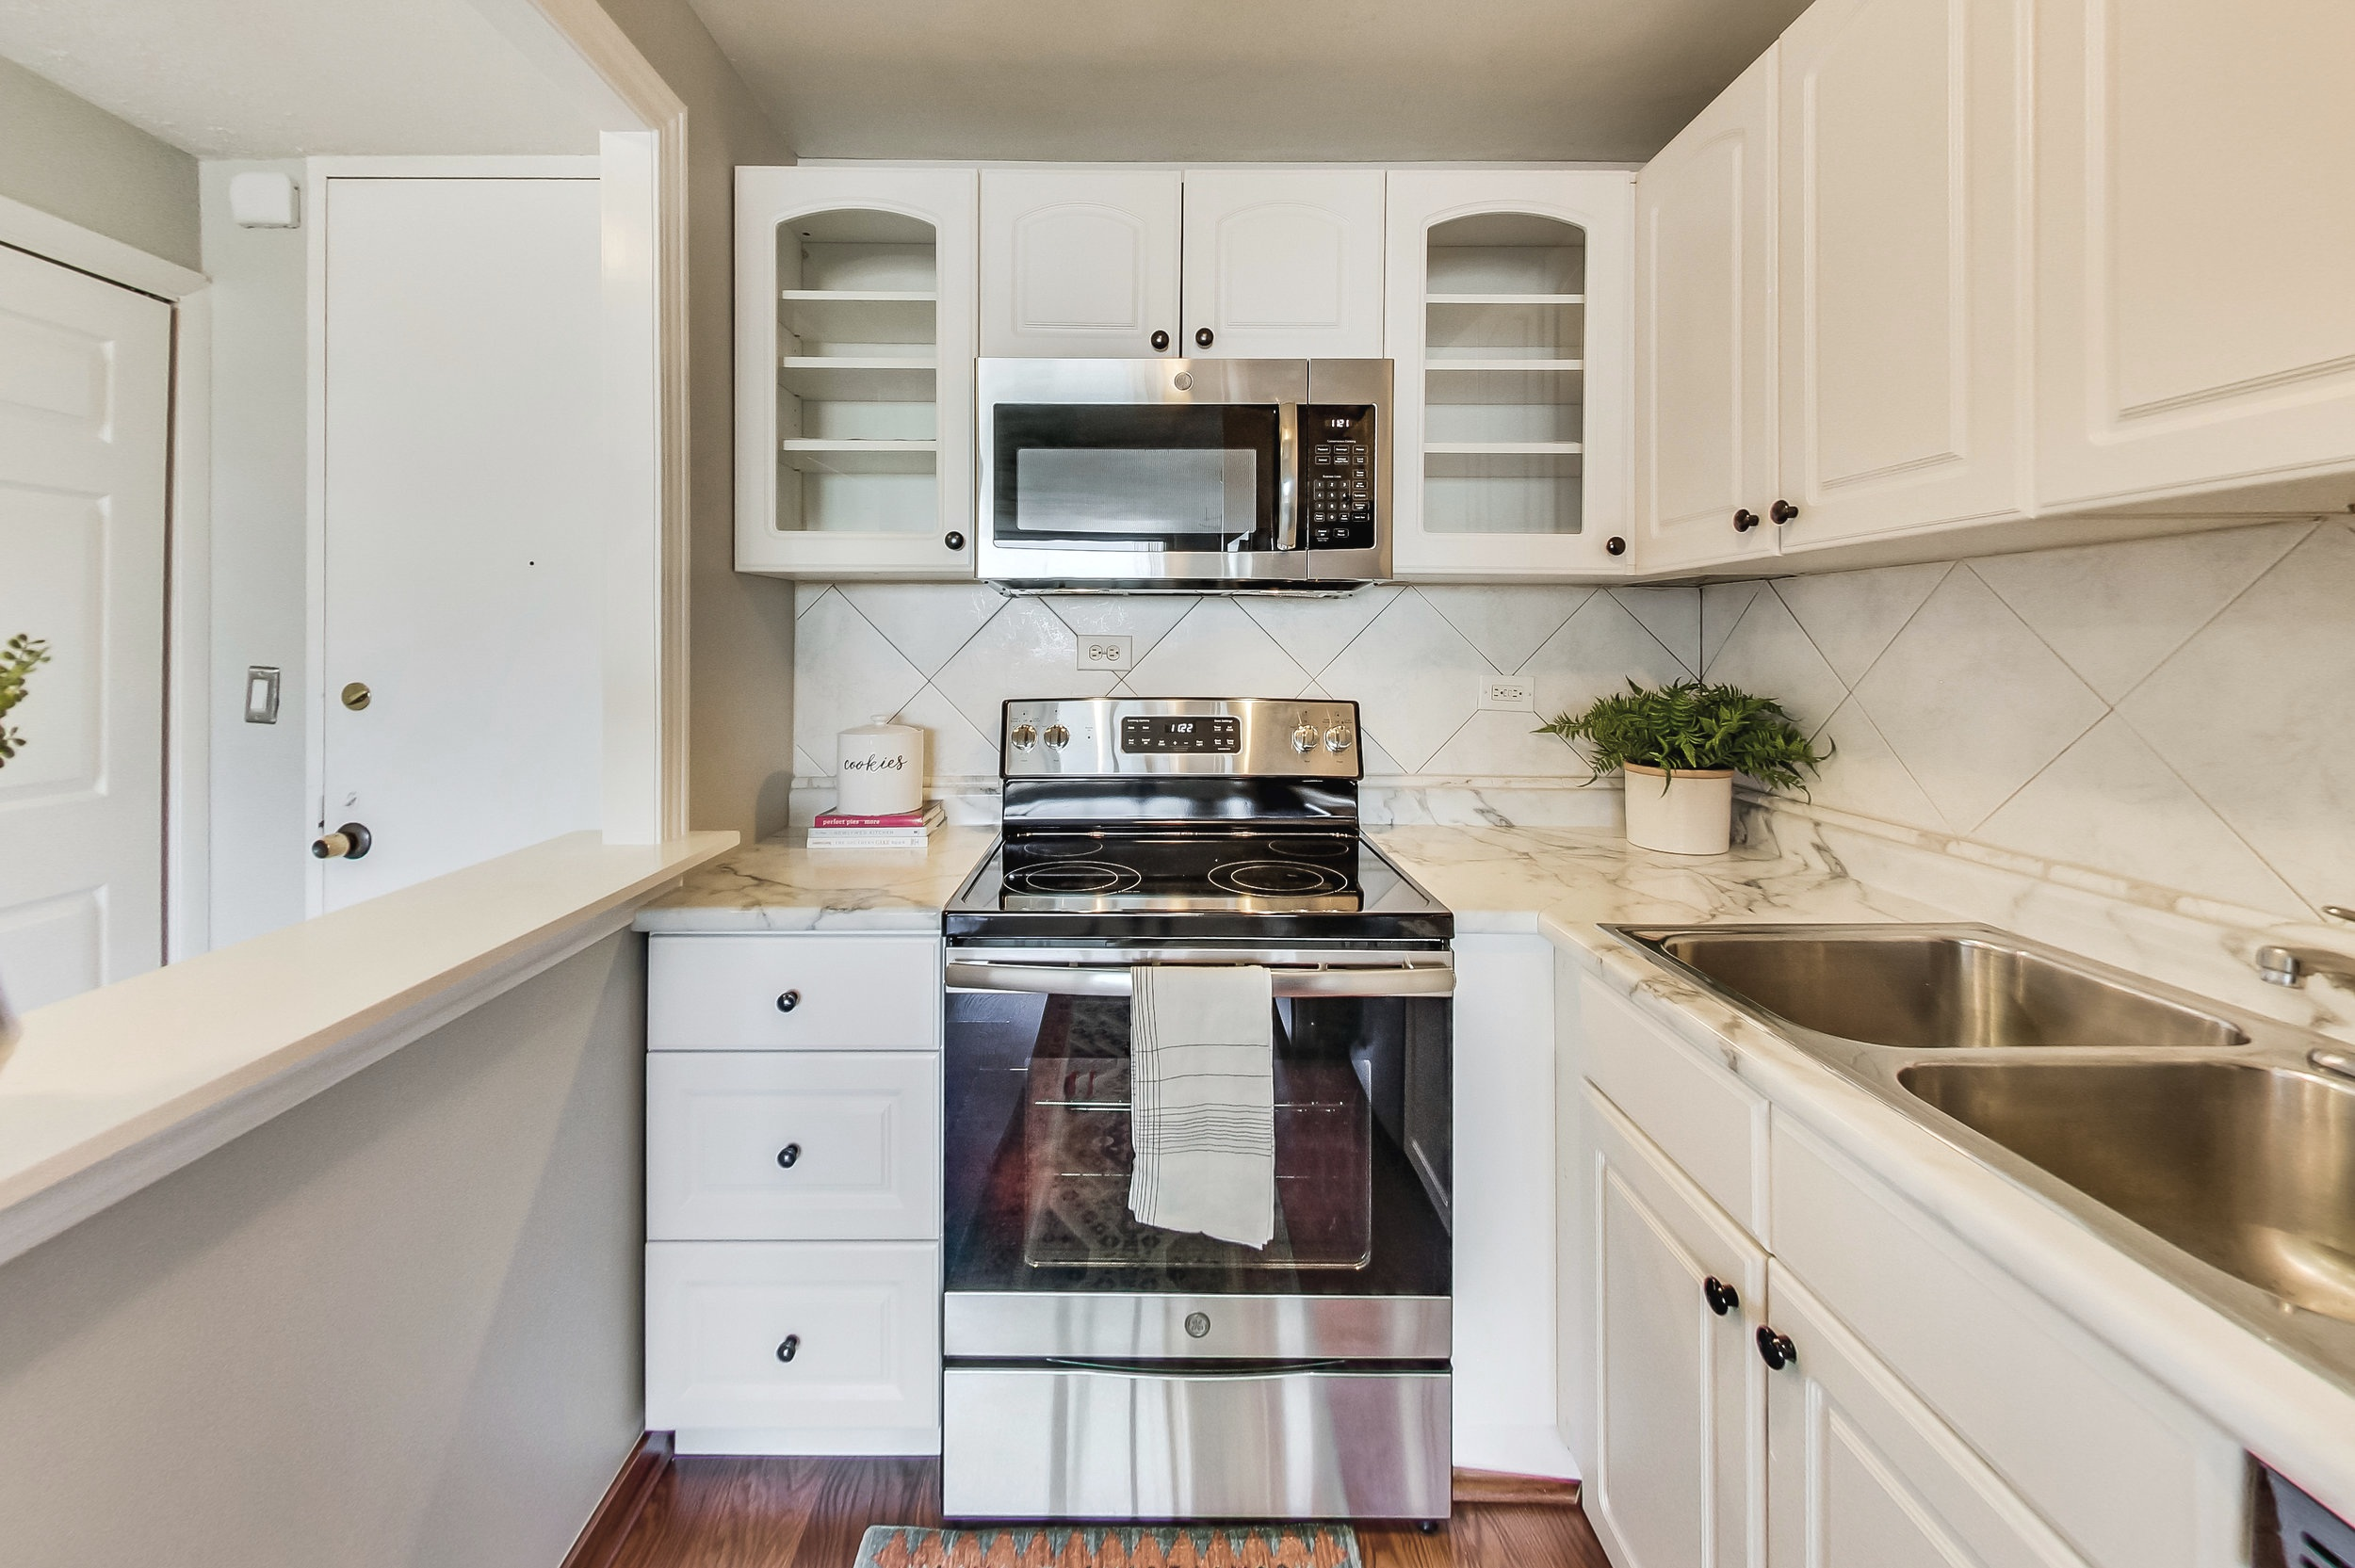 720-w-gordon-ter-9j-kourtney-murray-chicago-real-estate-buena-park-white-kitchen.jpg